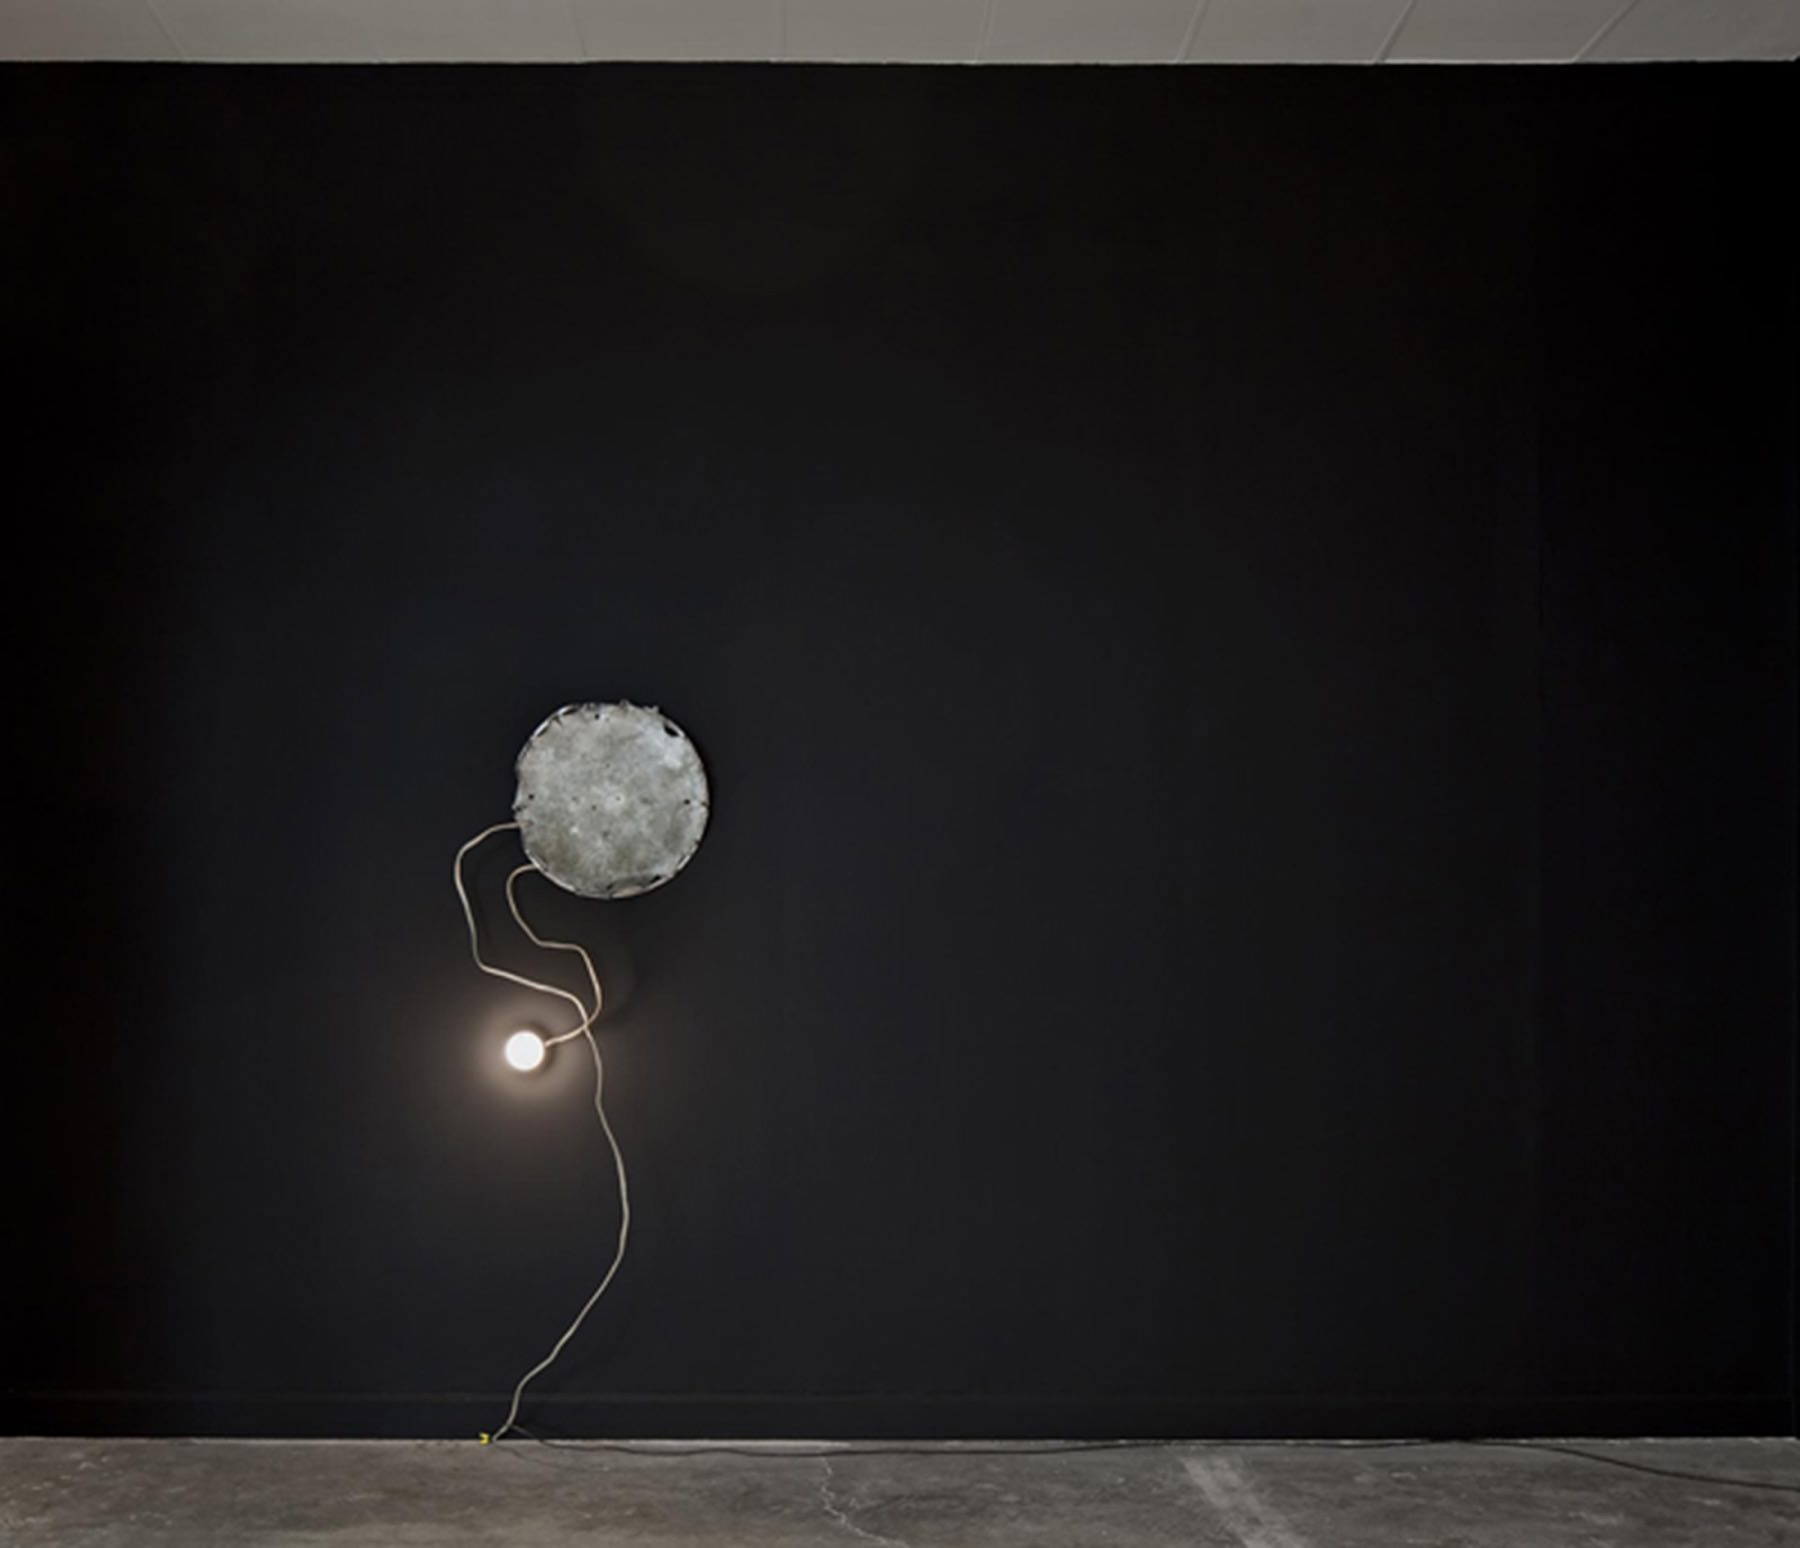 Bhakti Baxter, Black Onyx Wall with Light Source, 2010